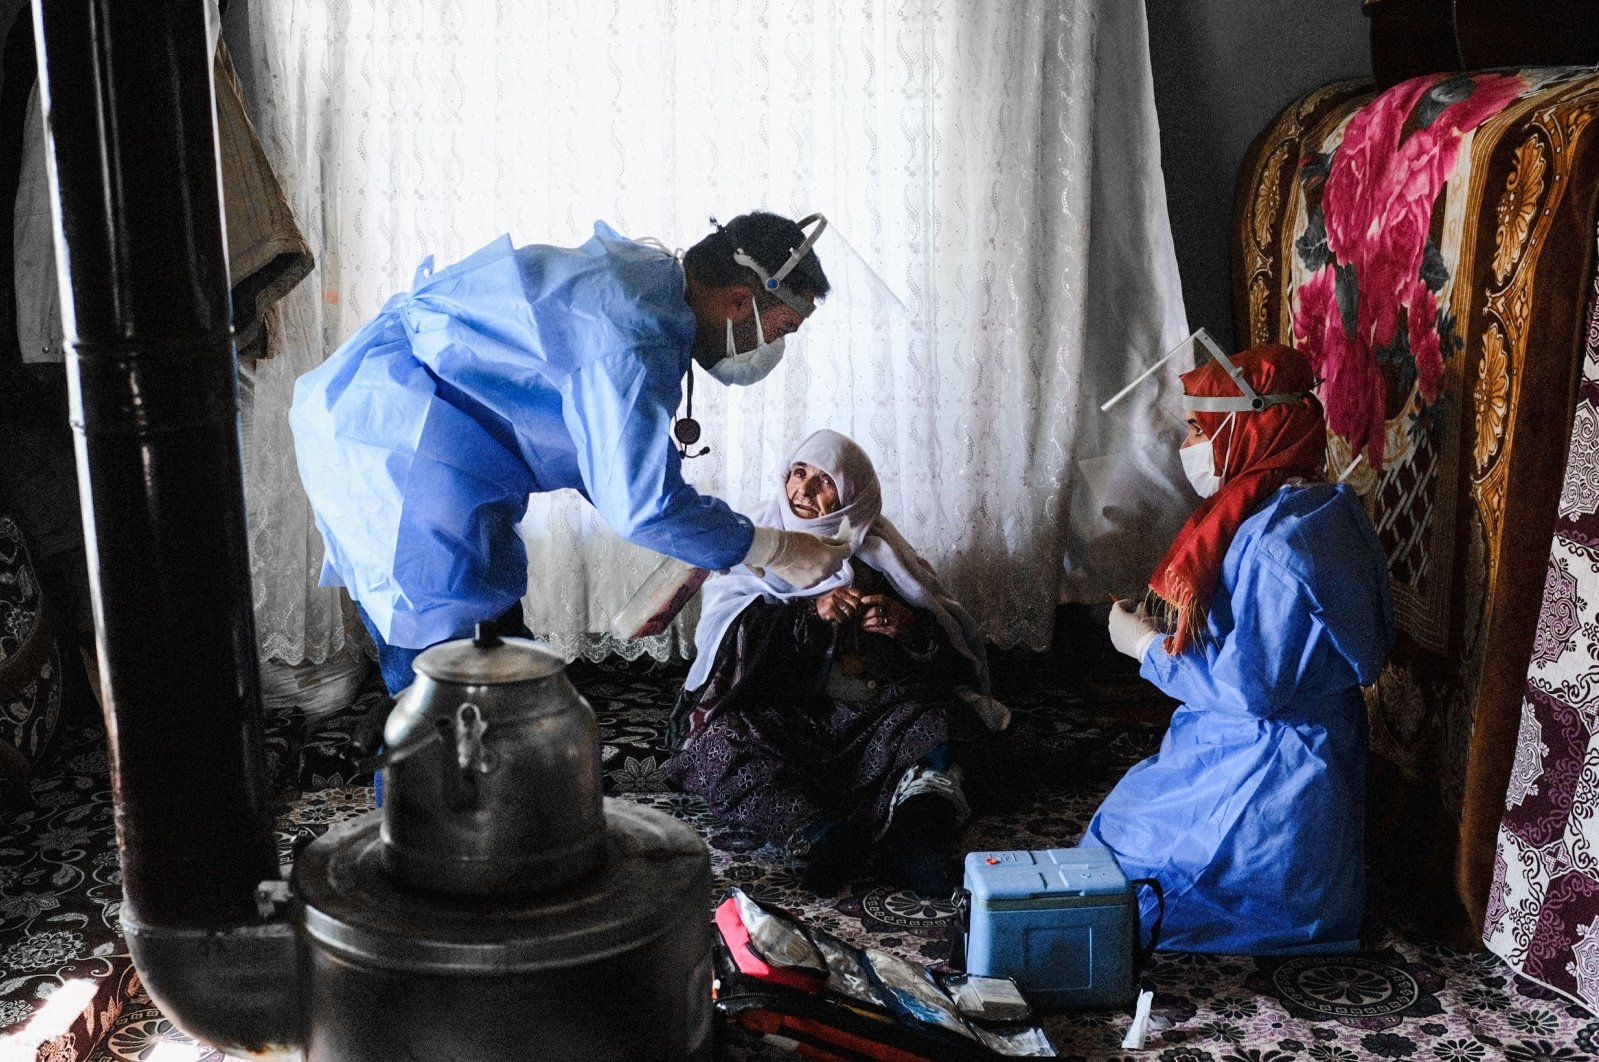 101-year-old Berfo Arsakay prepares to receive a vaccine from Doctor Akay Kaya (L) and nurse Yildiz Ayten (R) from the Bahçesaray public hospital vaccination team in the village of Güneyyamaç in eastern Turkey, Feb.15, 2021 (AFP Photo)